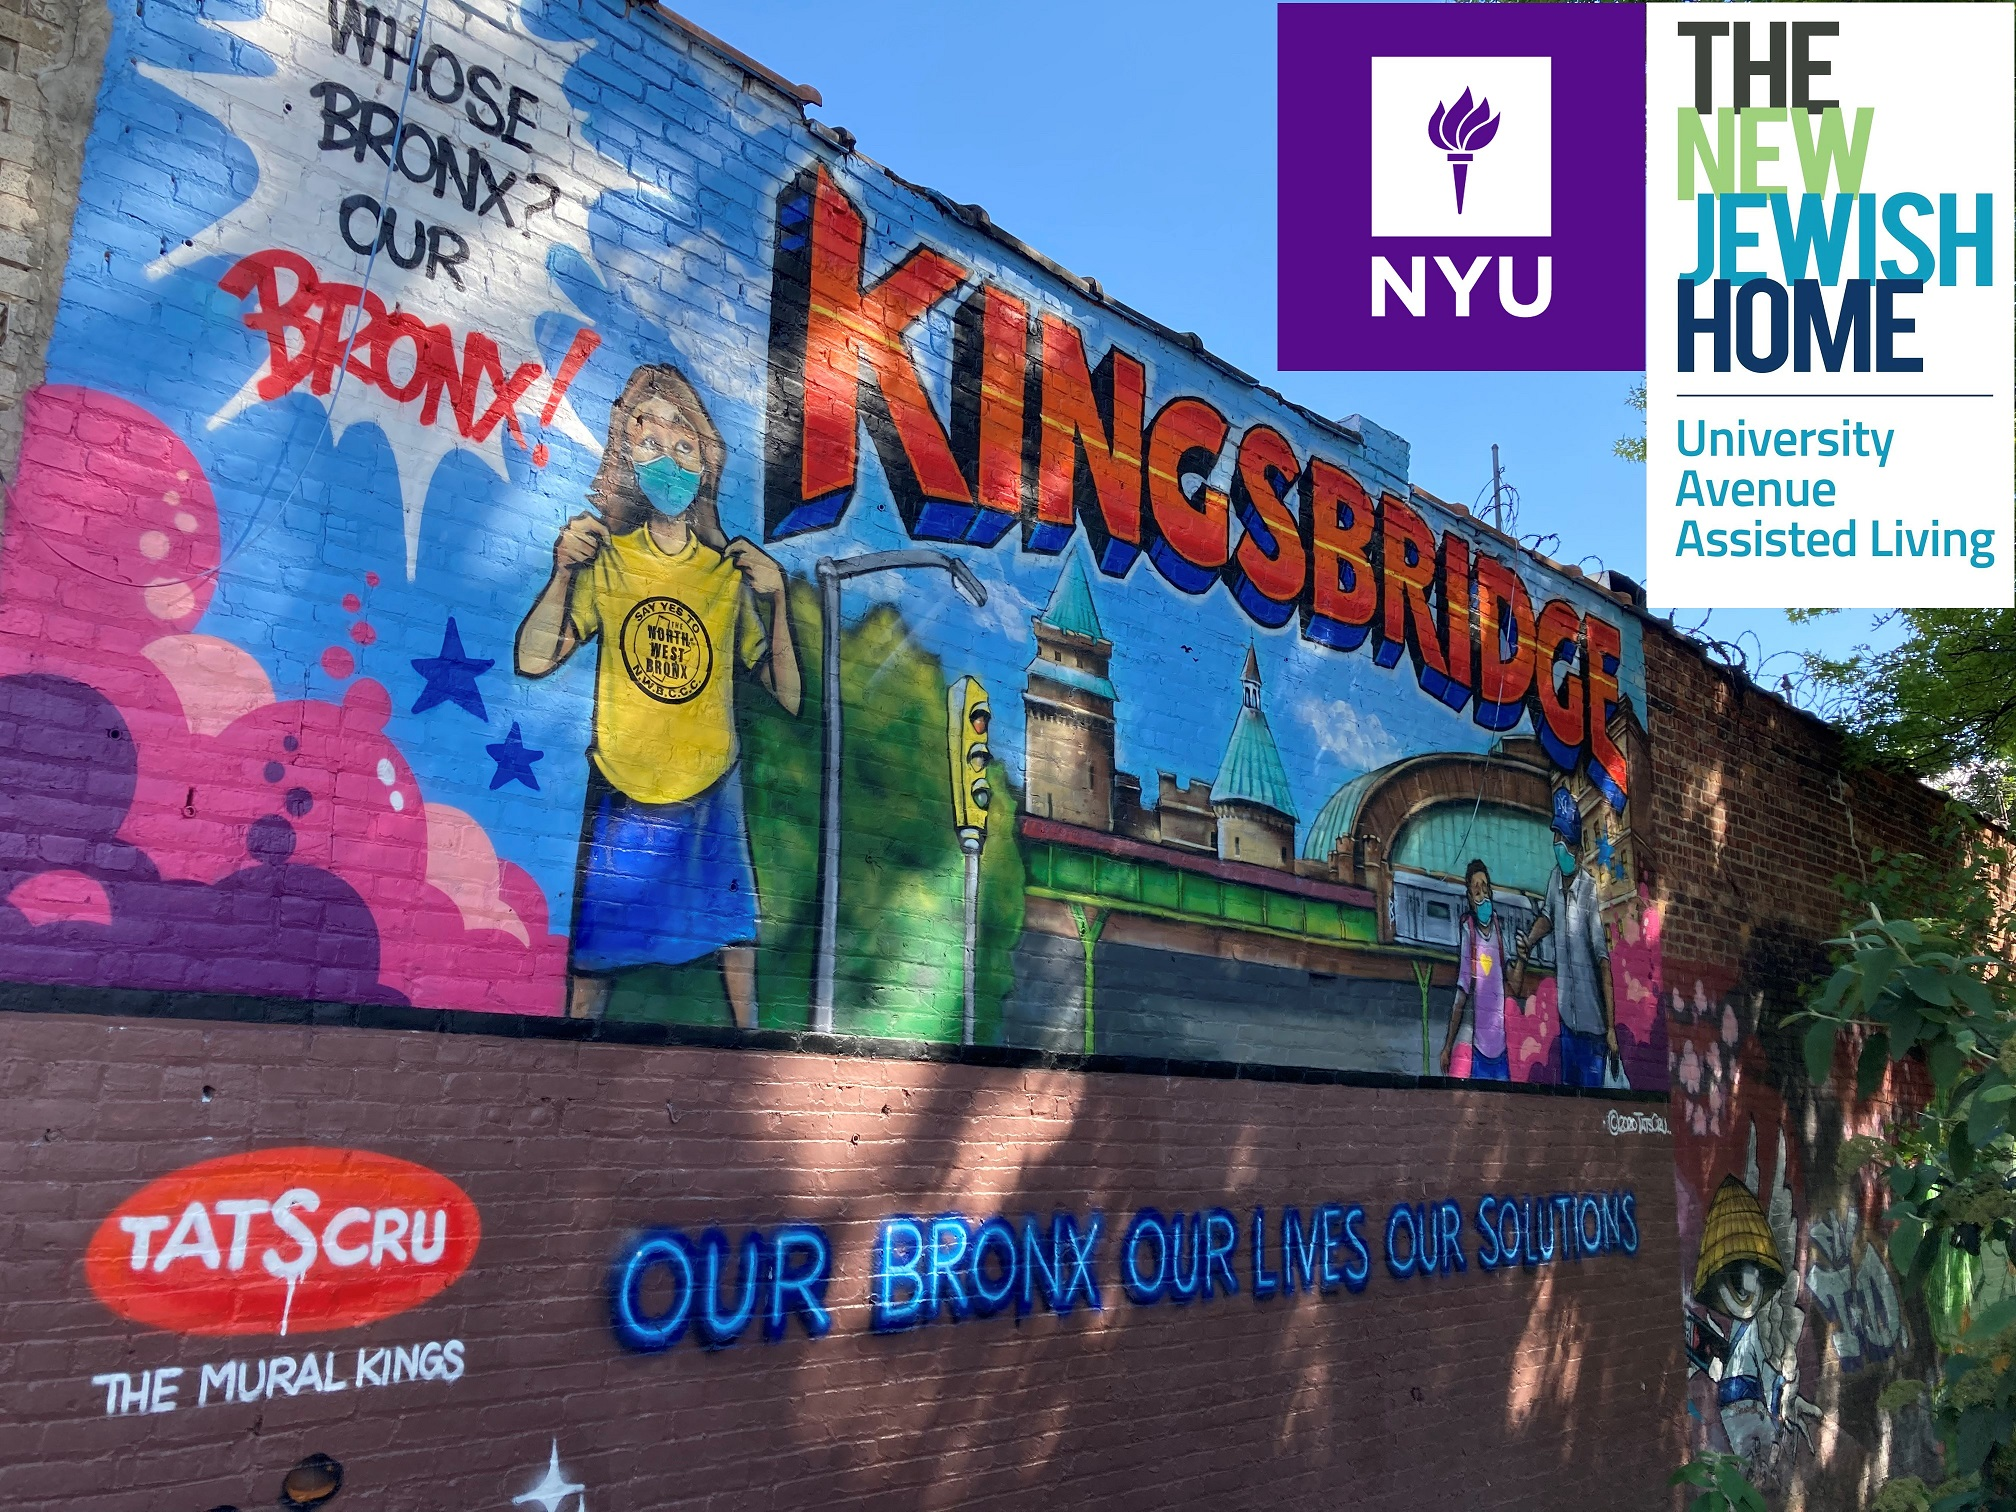 NYU College of Nursing and The New Jewish Home - Tipping Point Challenge Top 25 photo